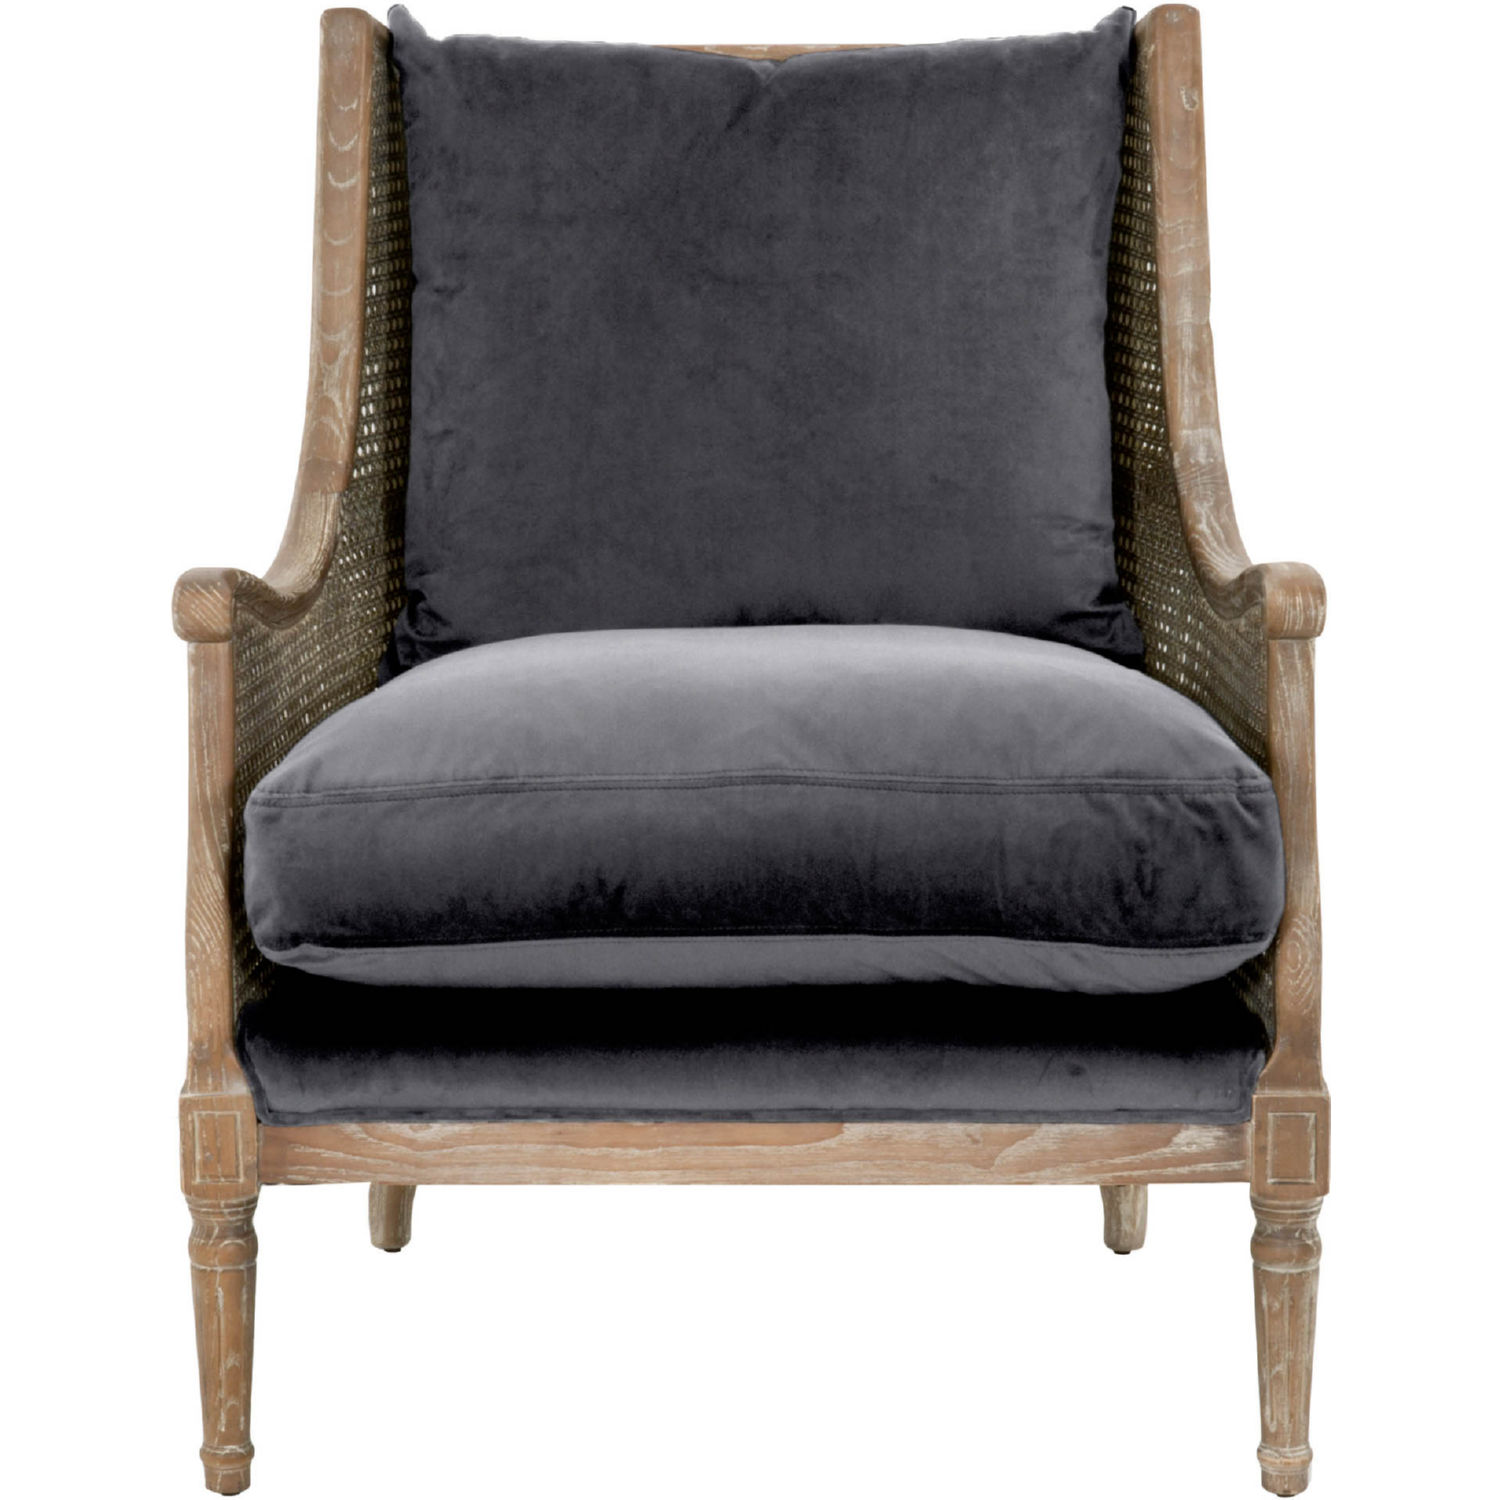 Orient Express Furniture 8213.SHGRY/W Churchill Club Chair In Shadow Grey  Velvet On Weathered Wood